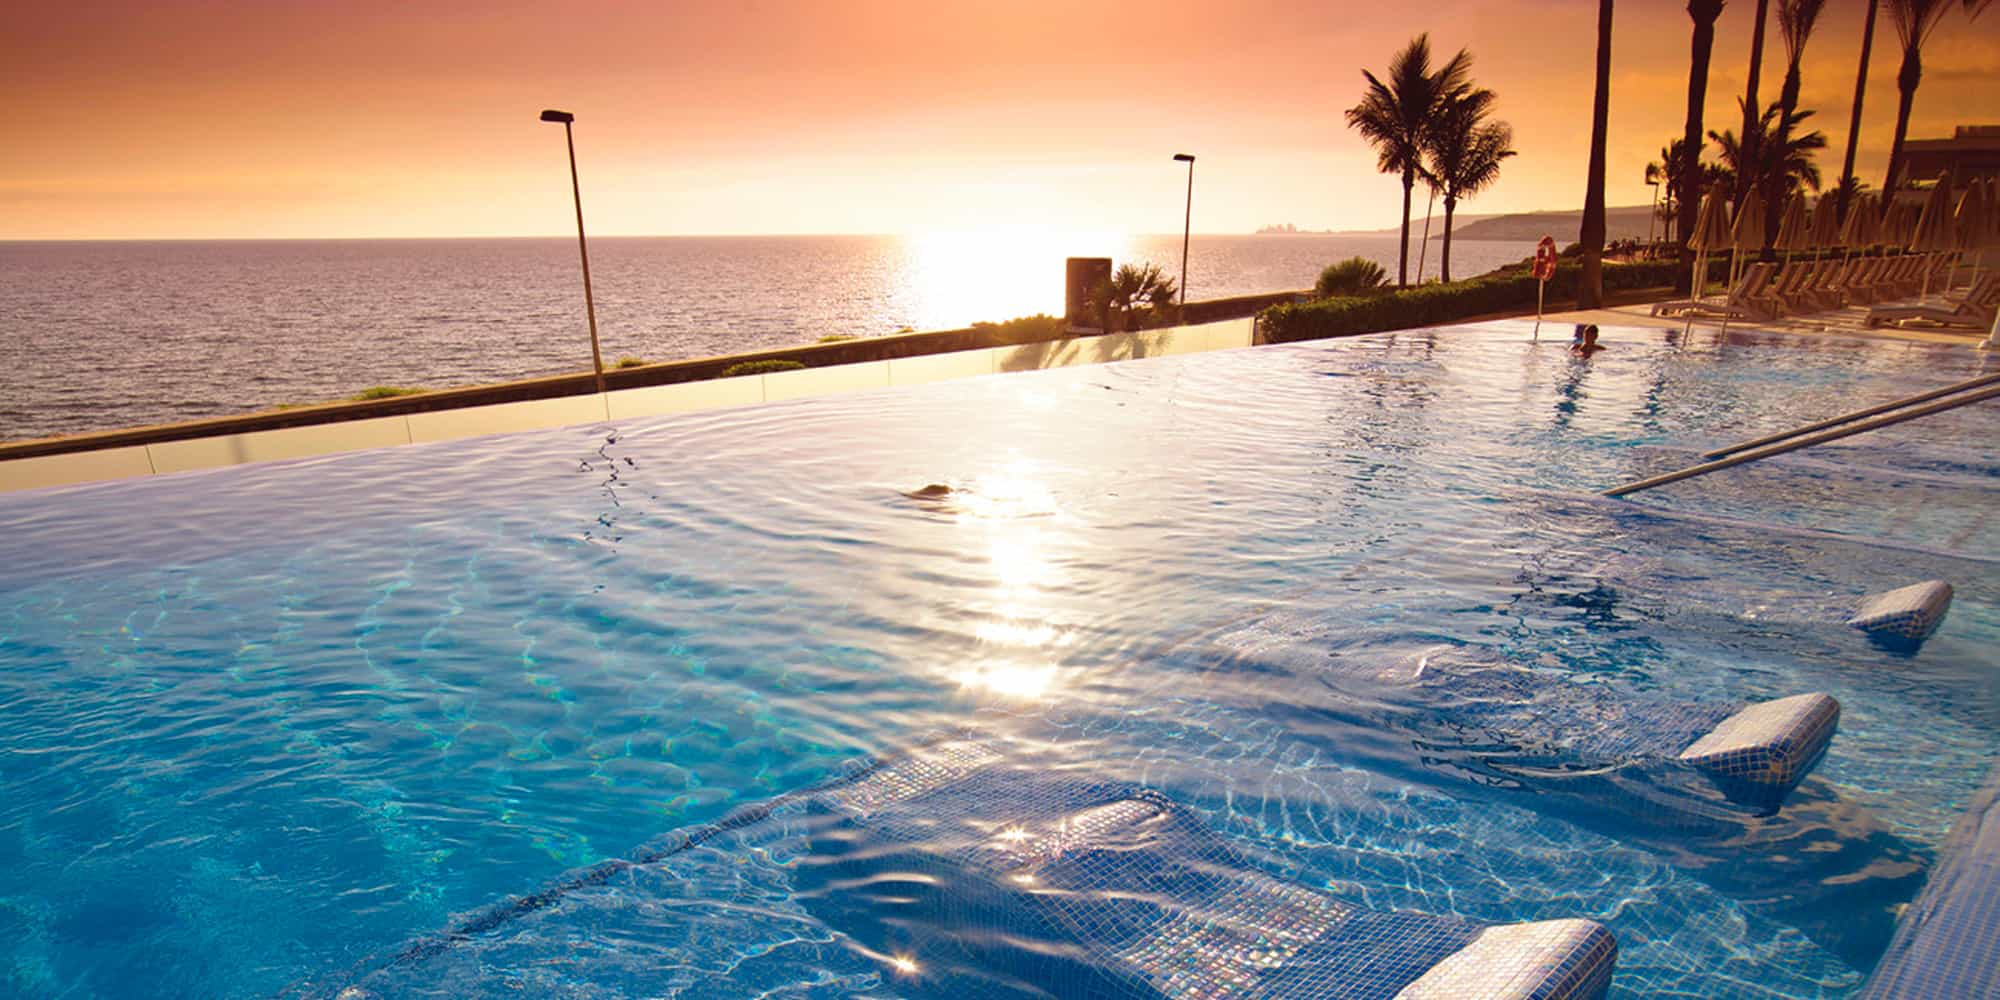 Hotel Riu Palace Meloneras,hotels in Spain